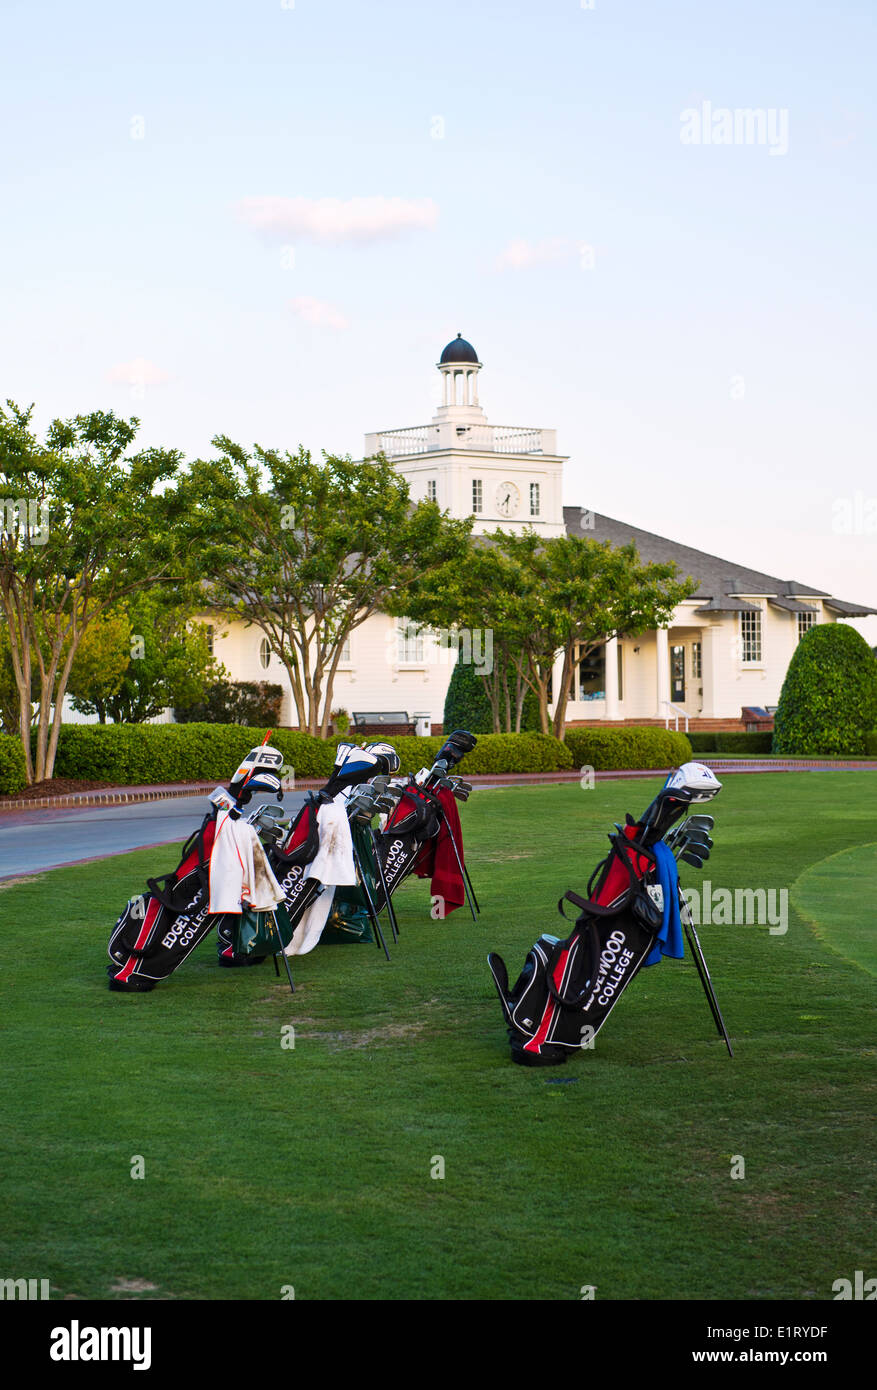 Golf Club Bags at the edge of the putting practice area at the clubhouse at Pinehurst Golf Resort & Country Club in Pinehurst NC - Stock Image